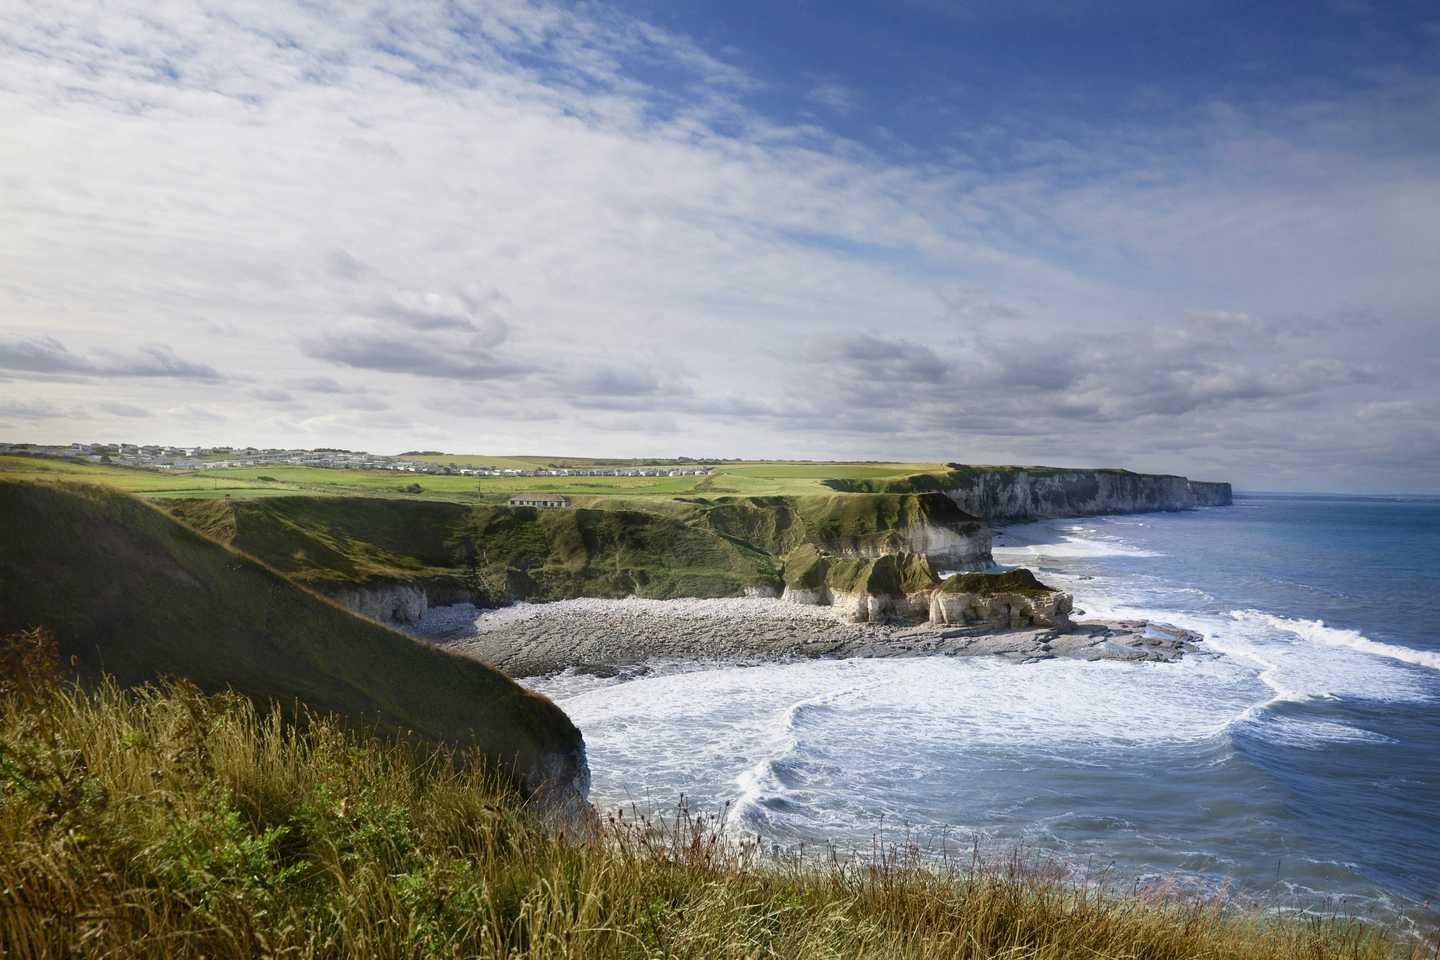 A view of the cliffs and sea at Thornwick Bay, Yorkshire